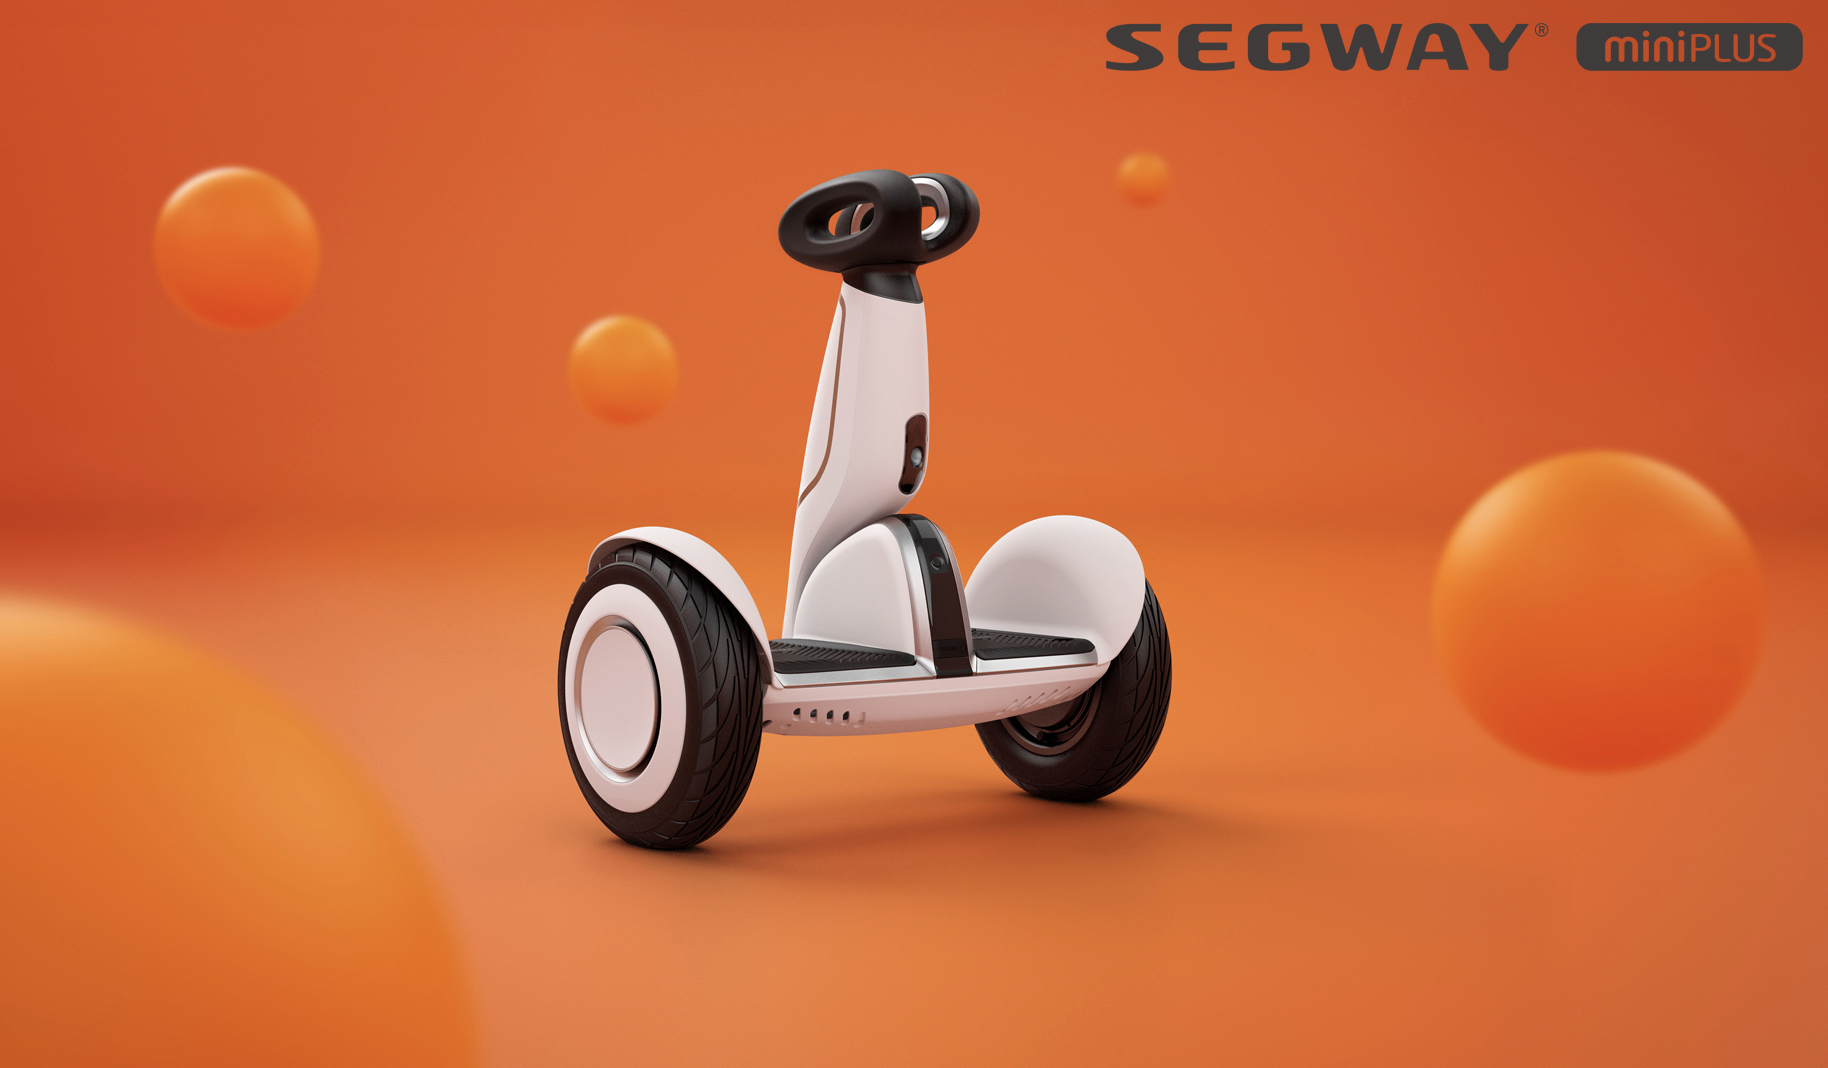 Segway expands its mini-series